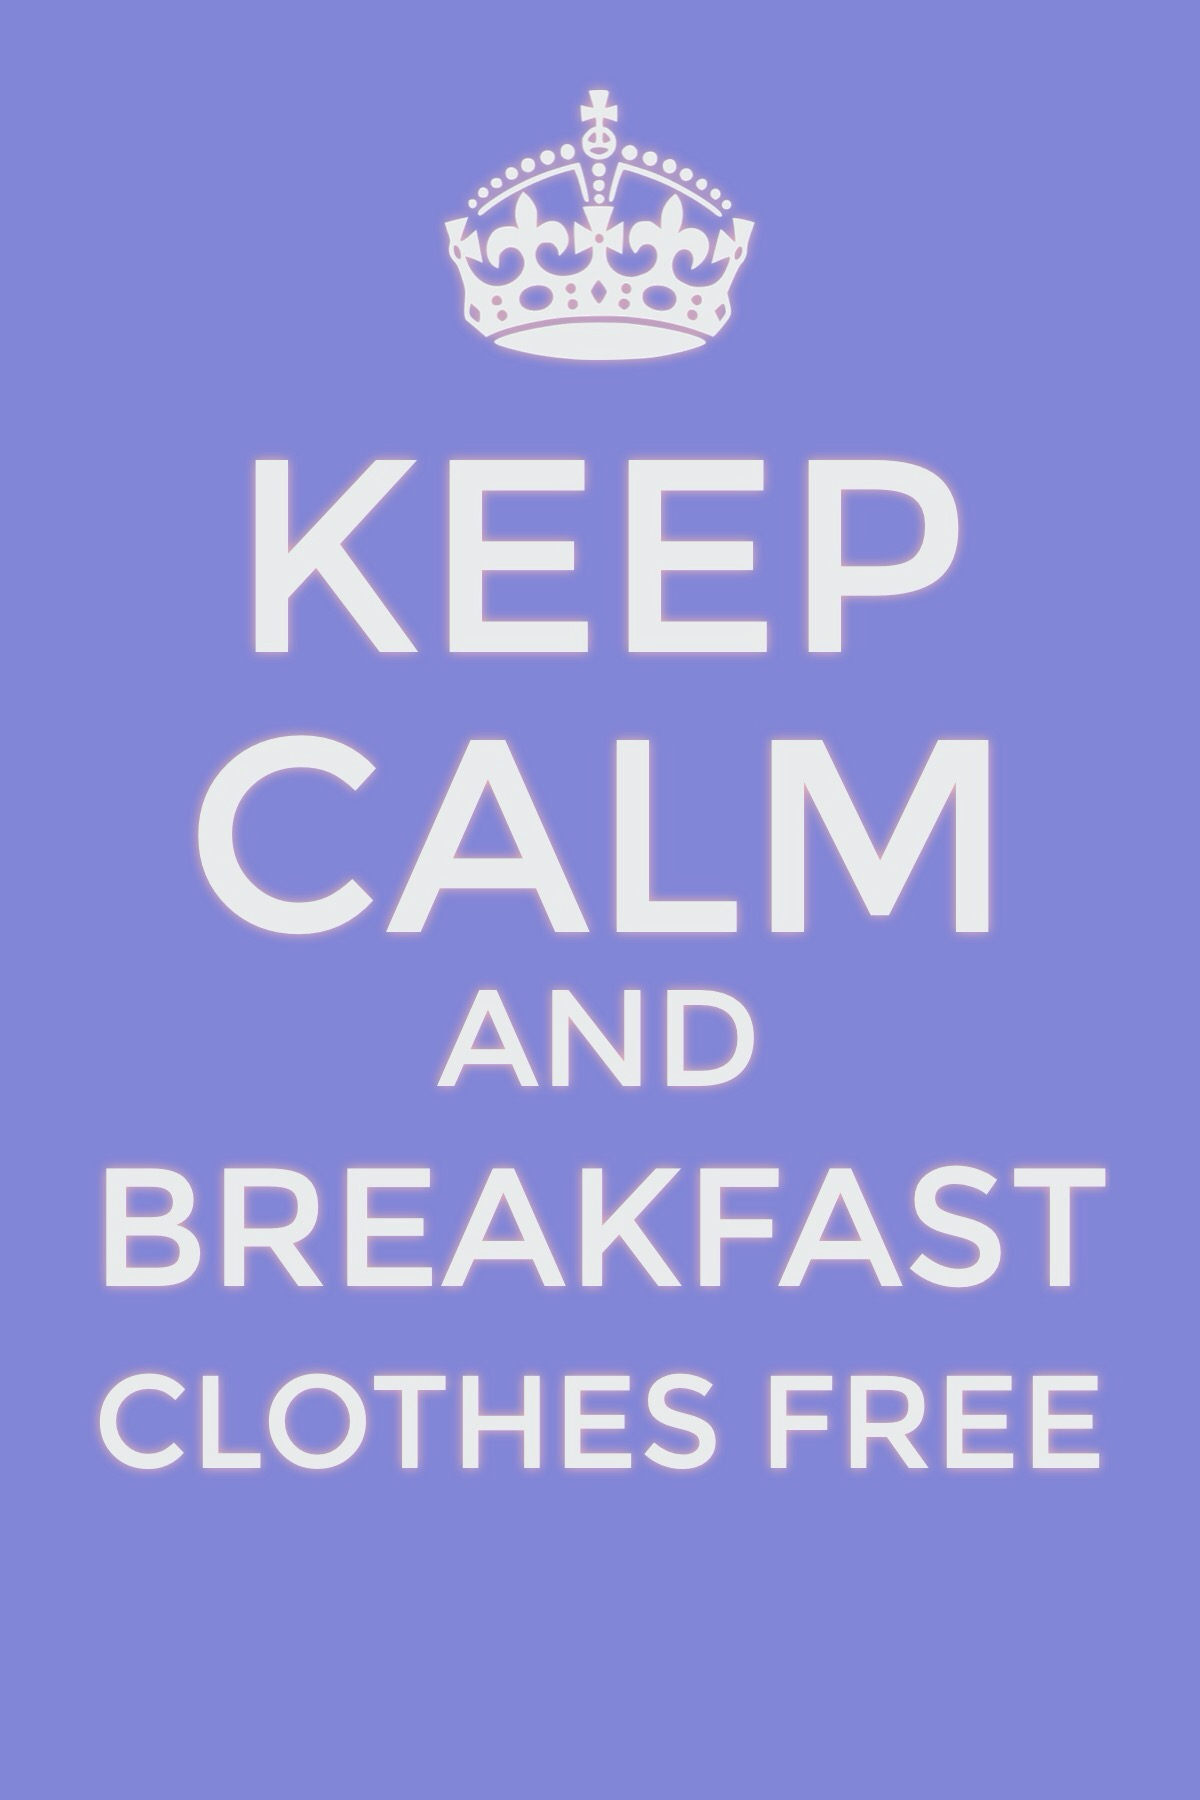 Breakfast Clothes Free